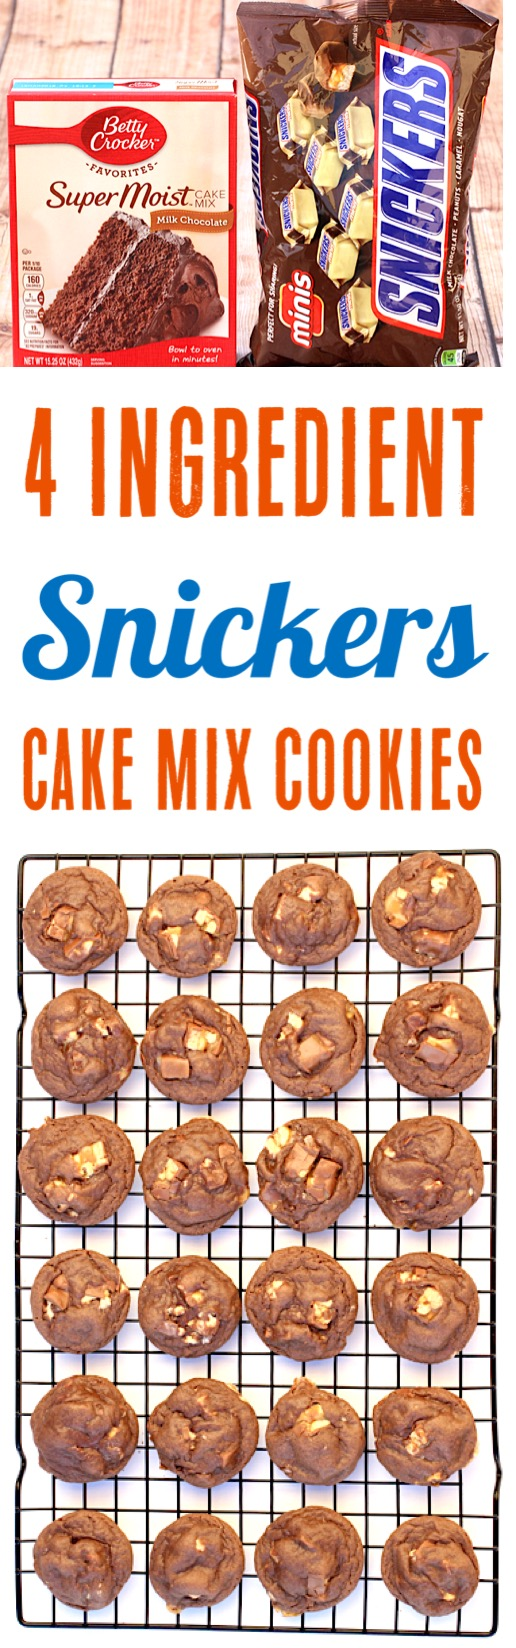 Snickers Cookies Recipes Easy Cake Mix Cookie Recipe using Snickers Candy Bars - Just 4 Ingredients